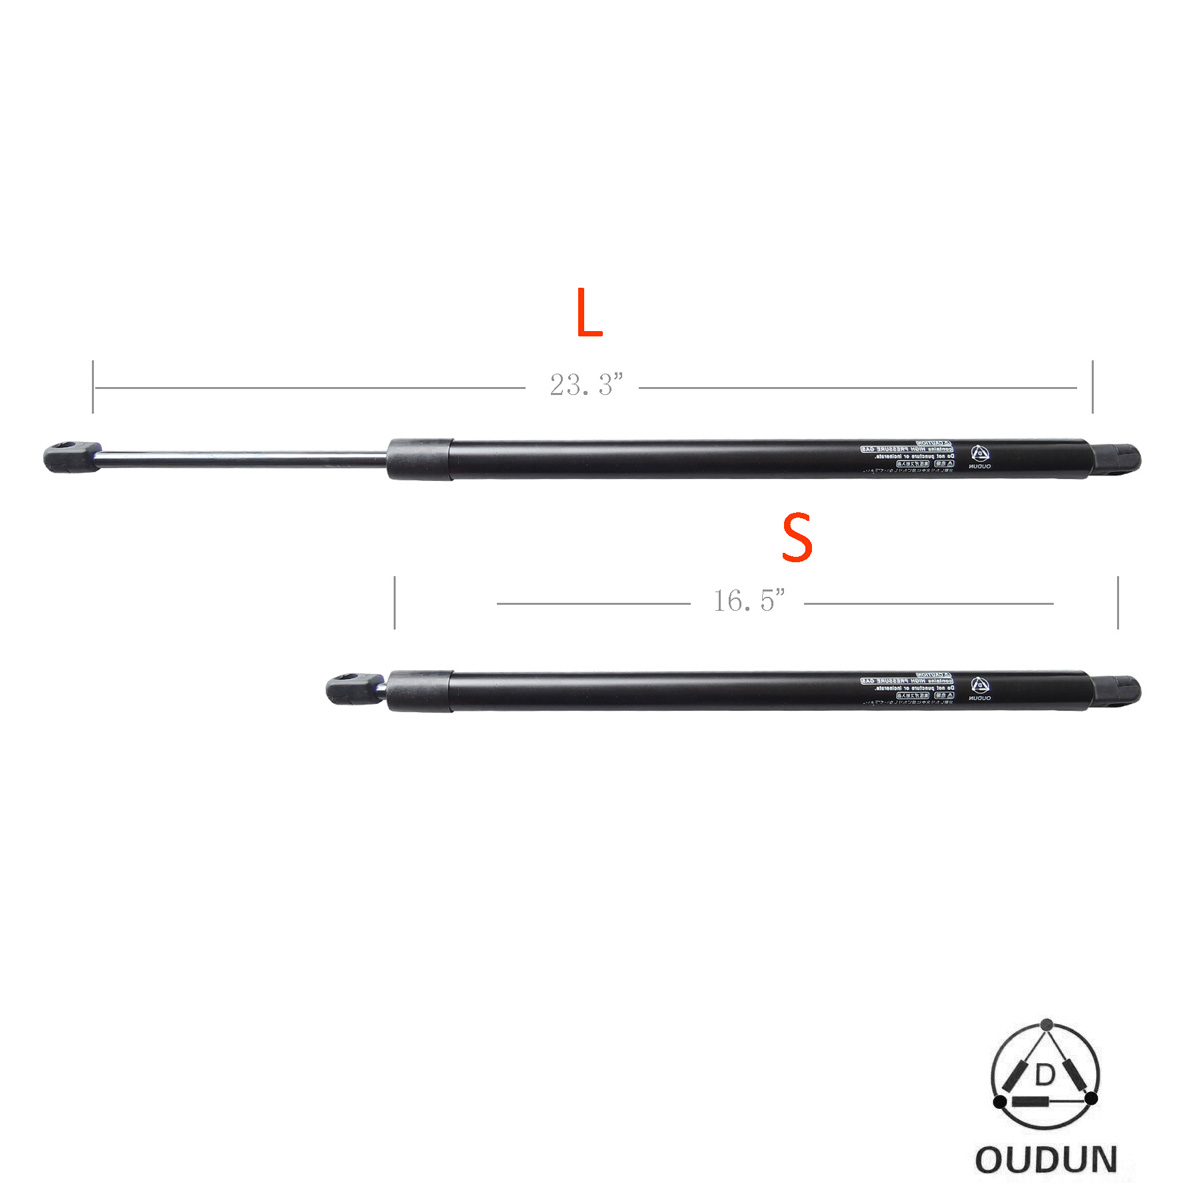 2001-2006 2008-2011 Mazda Tribute 2005-2011 Mercury Mariner Pack of 2o OCPTY Front 235913 235912 71594 71593 Shock Absorbers Struts Fit for 2001-2012 Ford Escape